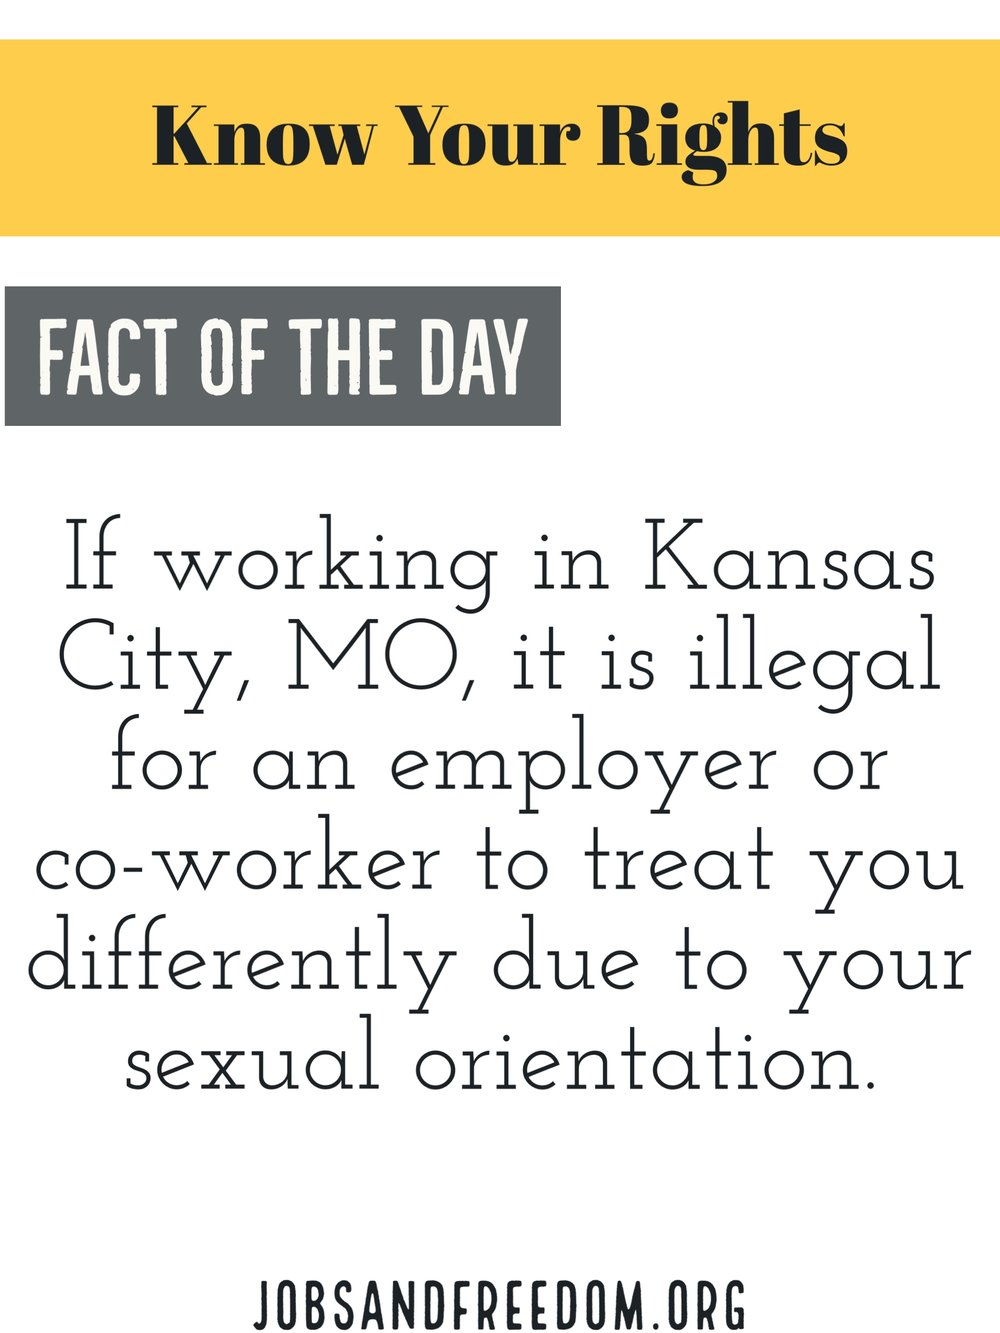 if working Kansas City, MO, it is illegal for an employer or co-worker to treat you differently due to your sexual orientation.